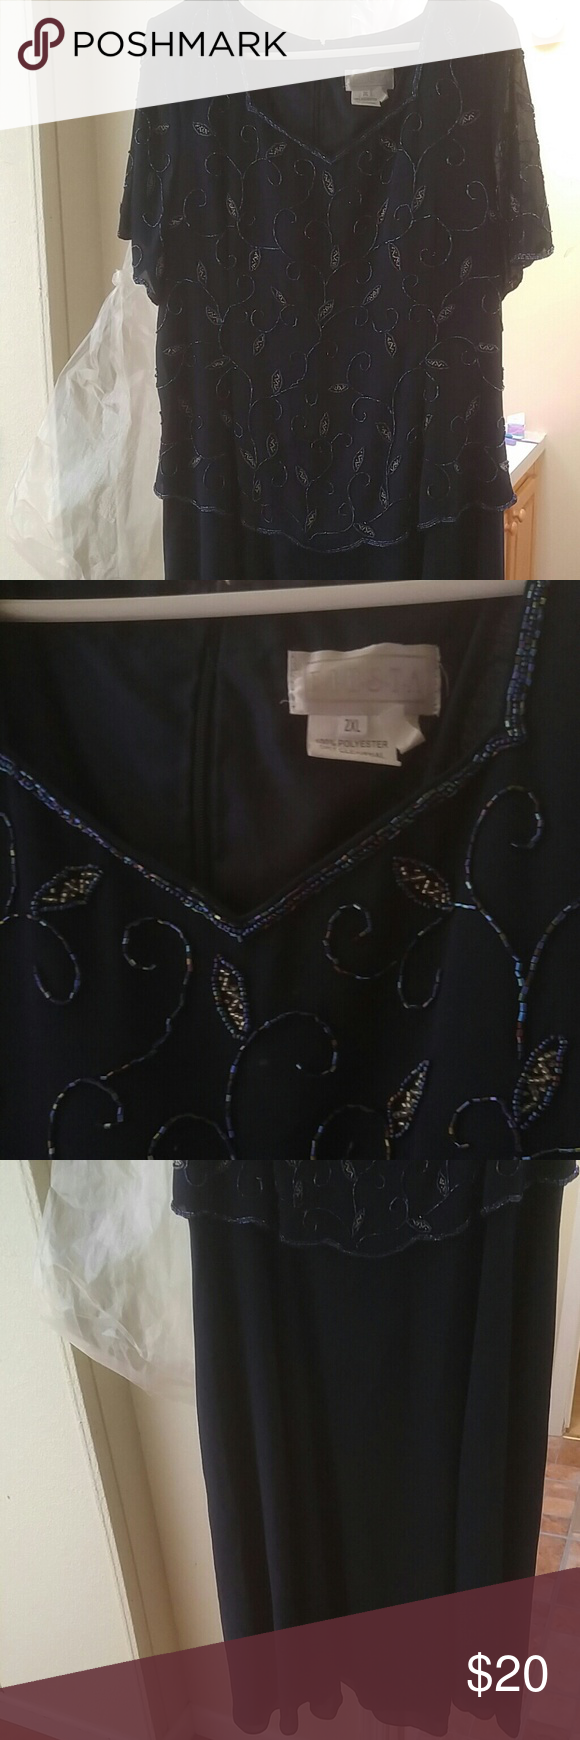 Beatiful navy blue dress with detail beading.  2xl This dress is gorgeous!  Very detailed beading, back zip.  It was worn once and kept in bag.  Would be a nice dress to wear for Ann upcoming holiday party event! Dresses